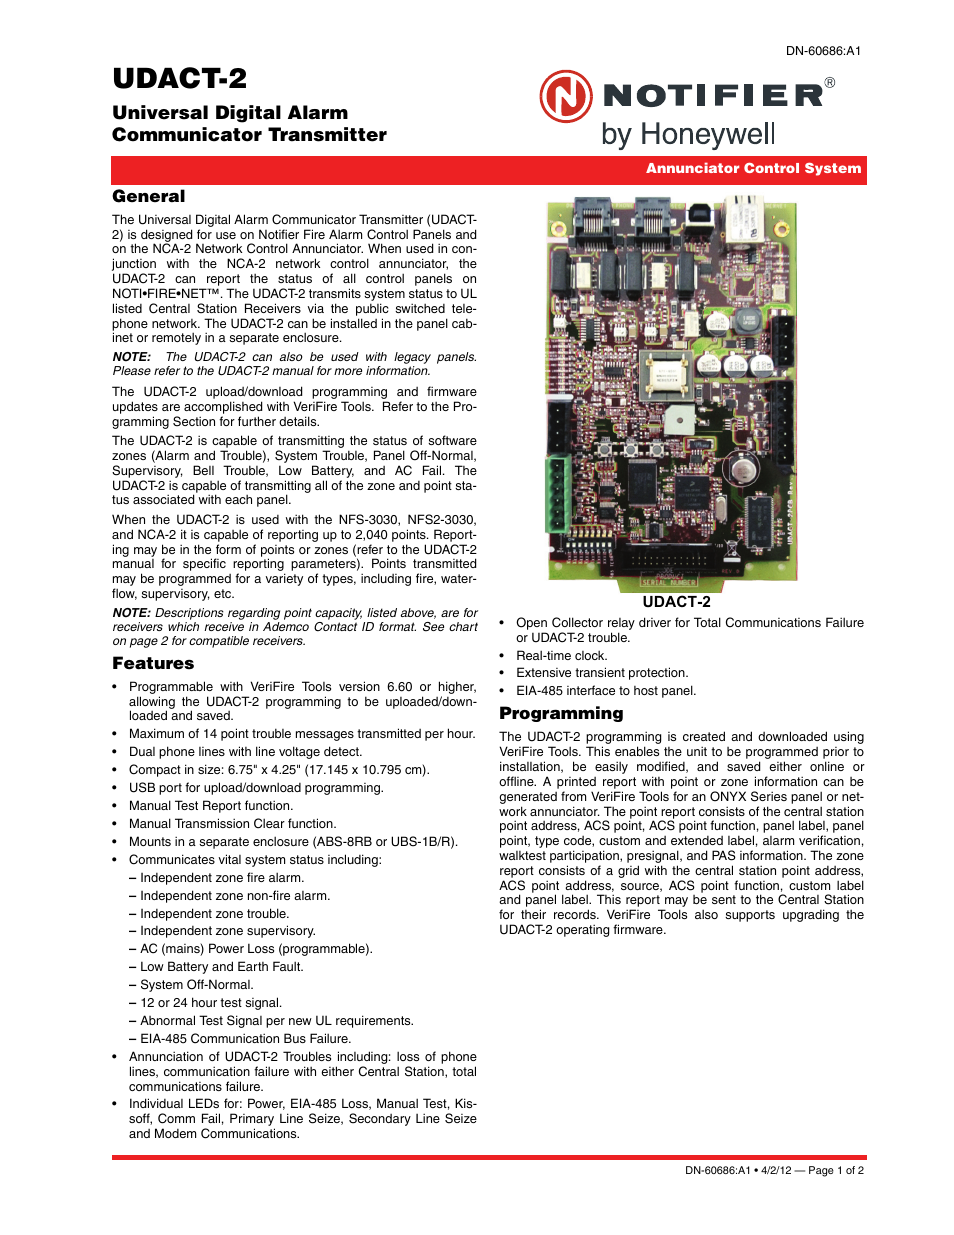 Notifier UDACT-2 User Manual | 2 pages